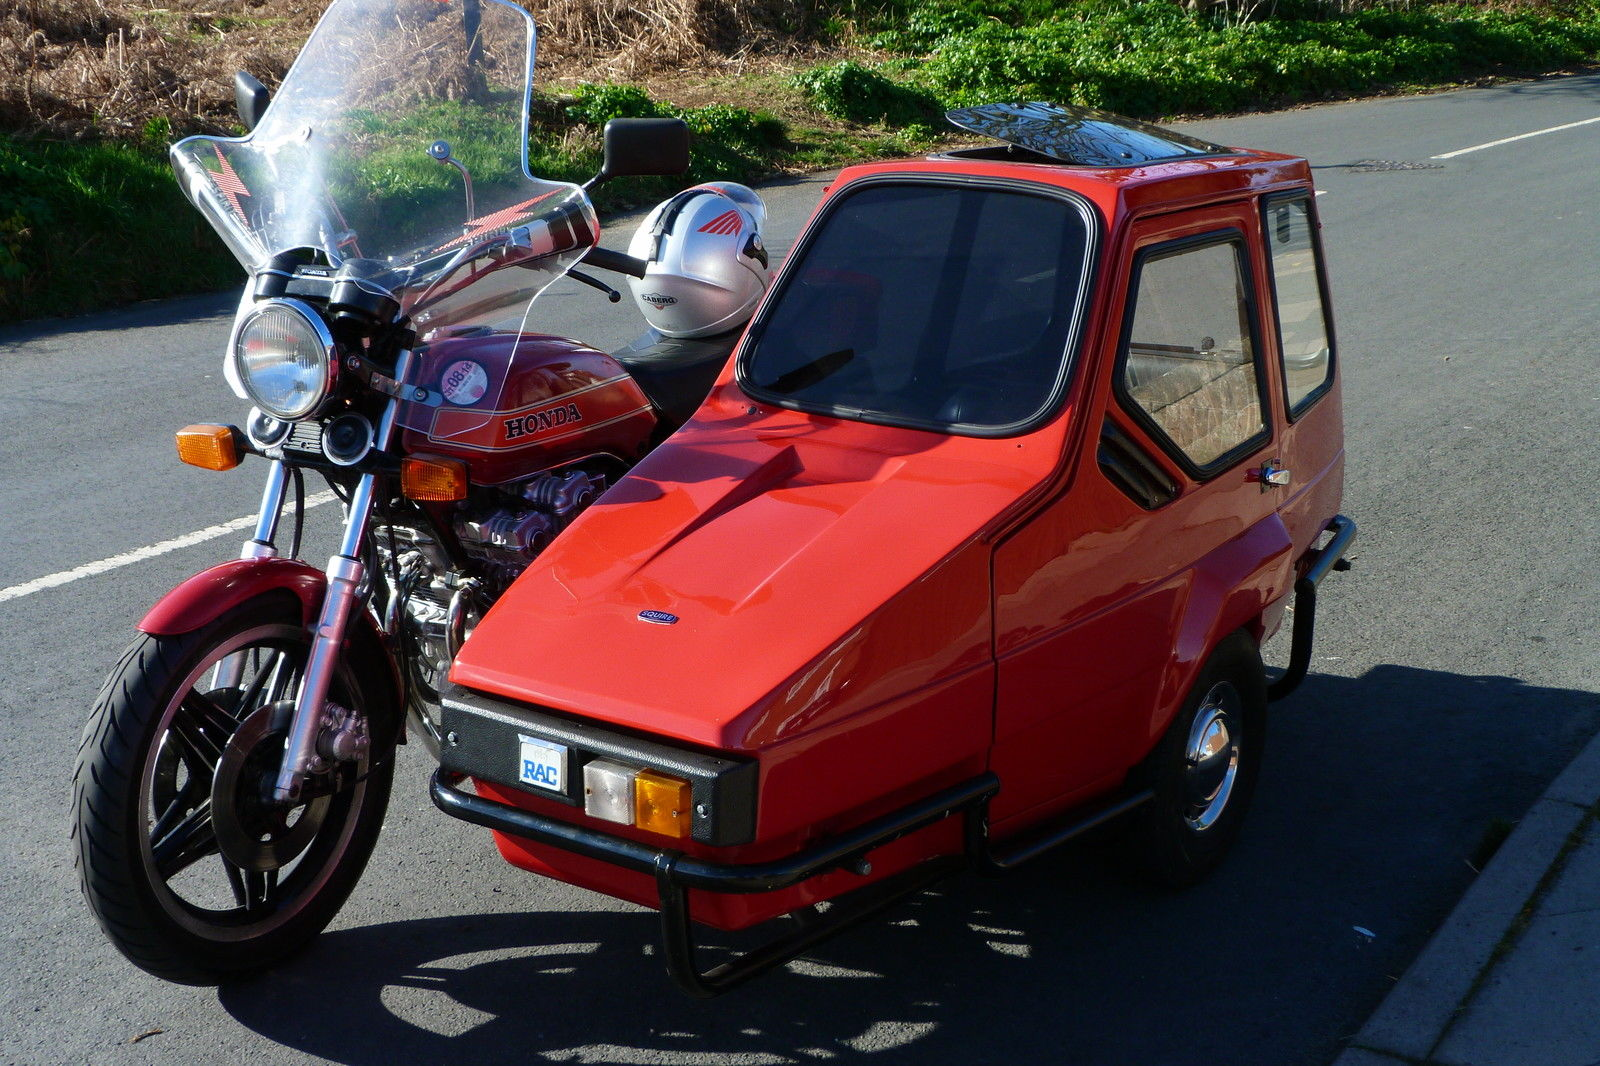 Honda 750 F 1980 Outfit in Red with Squire child / adult sidecar